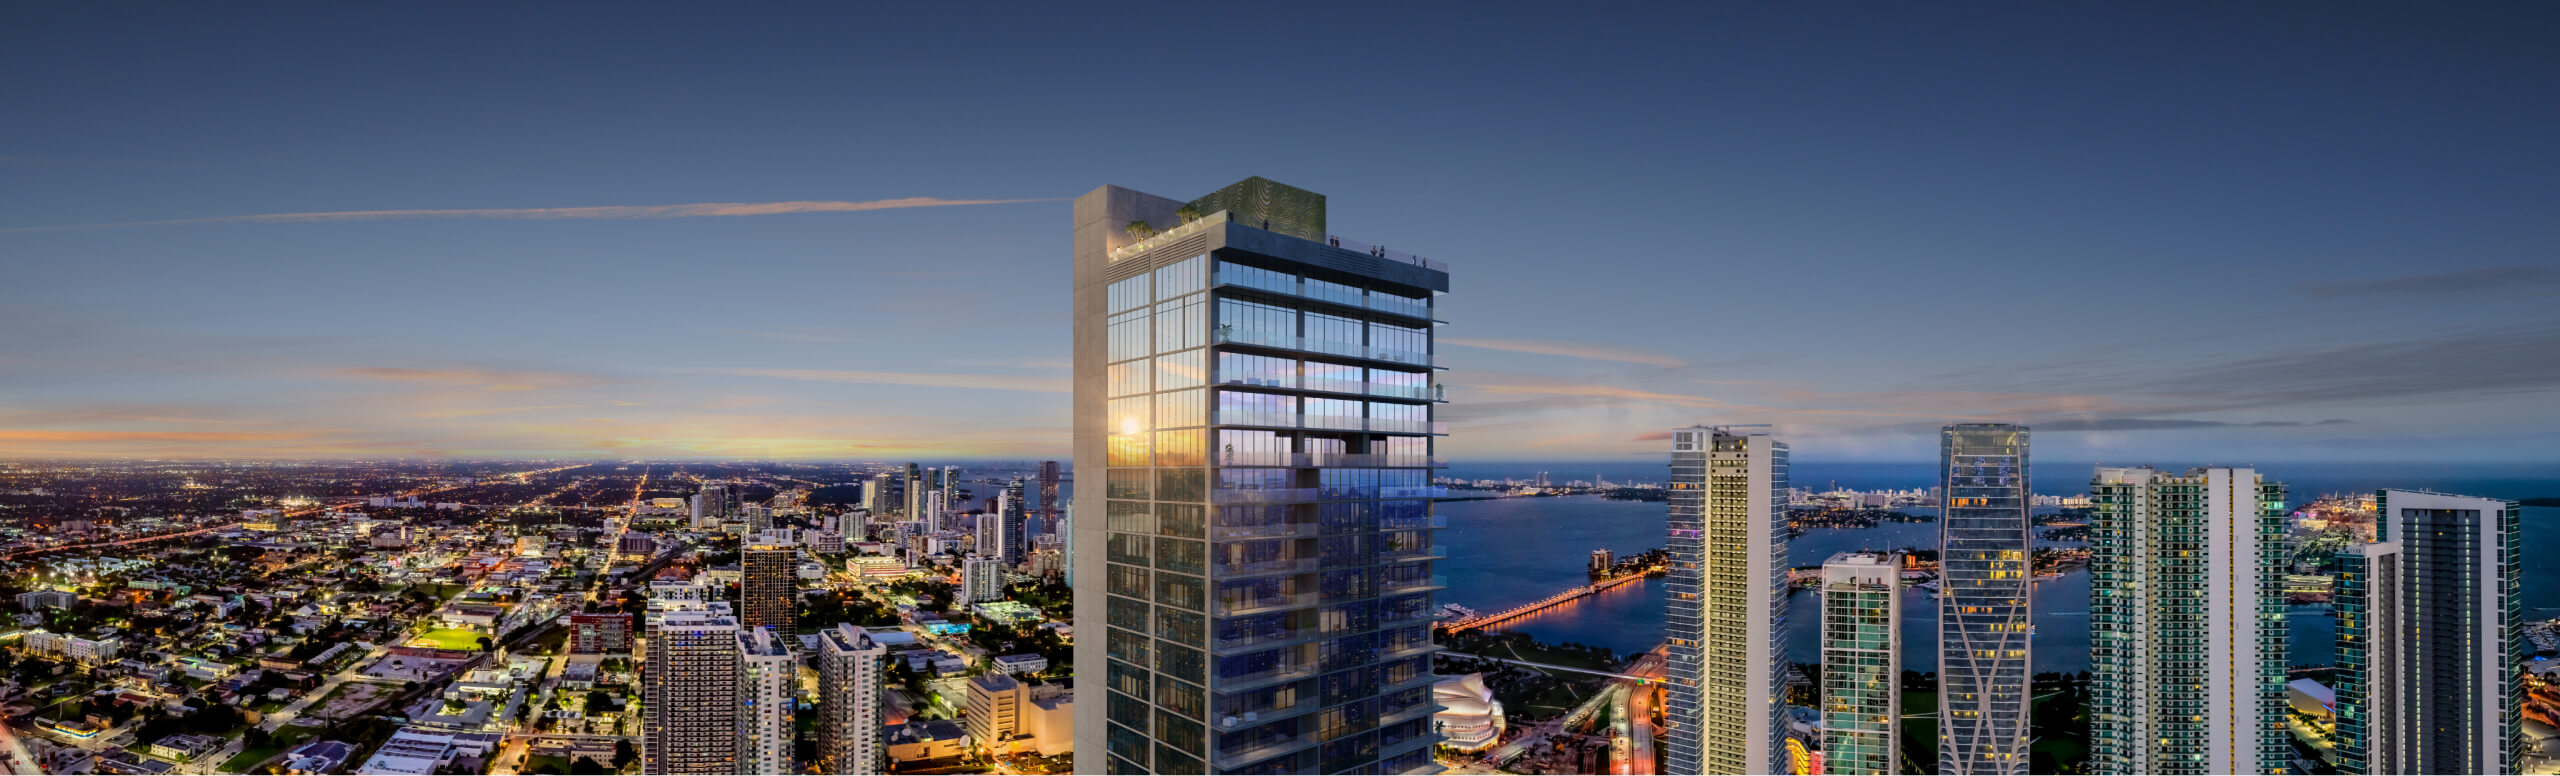 E11EVEN Hotel & Residences. Designed by Sieger Suarez Architects.